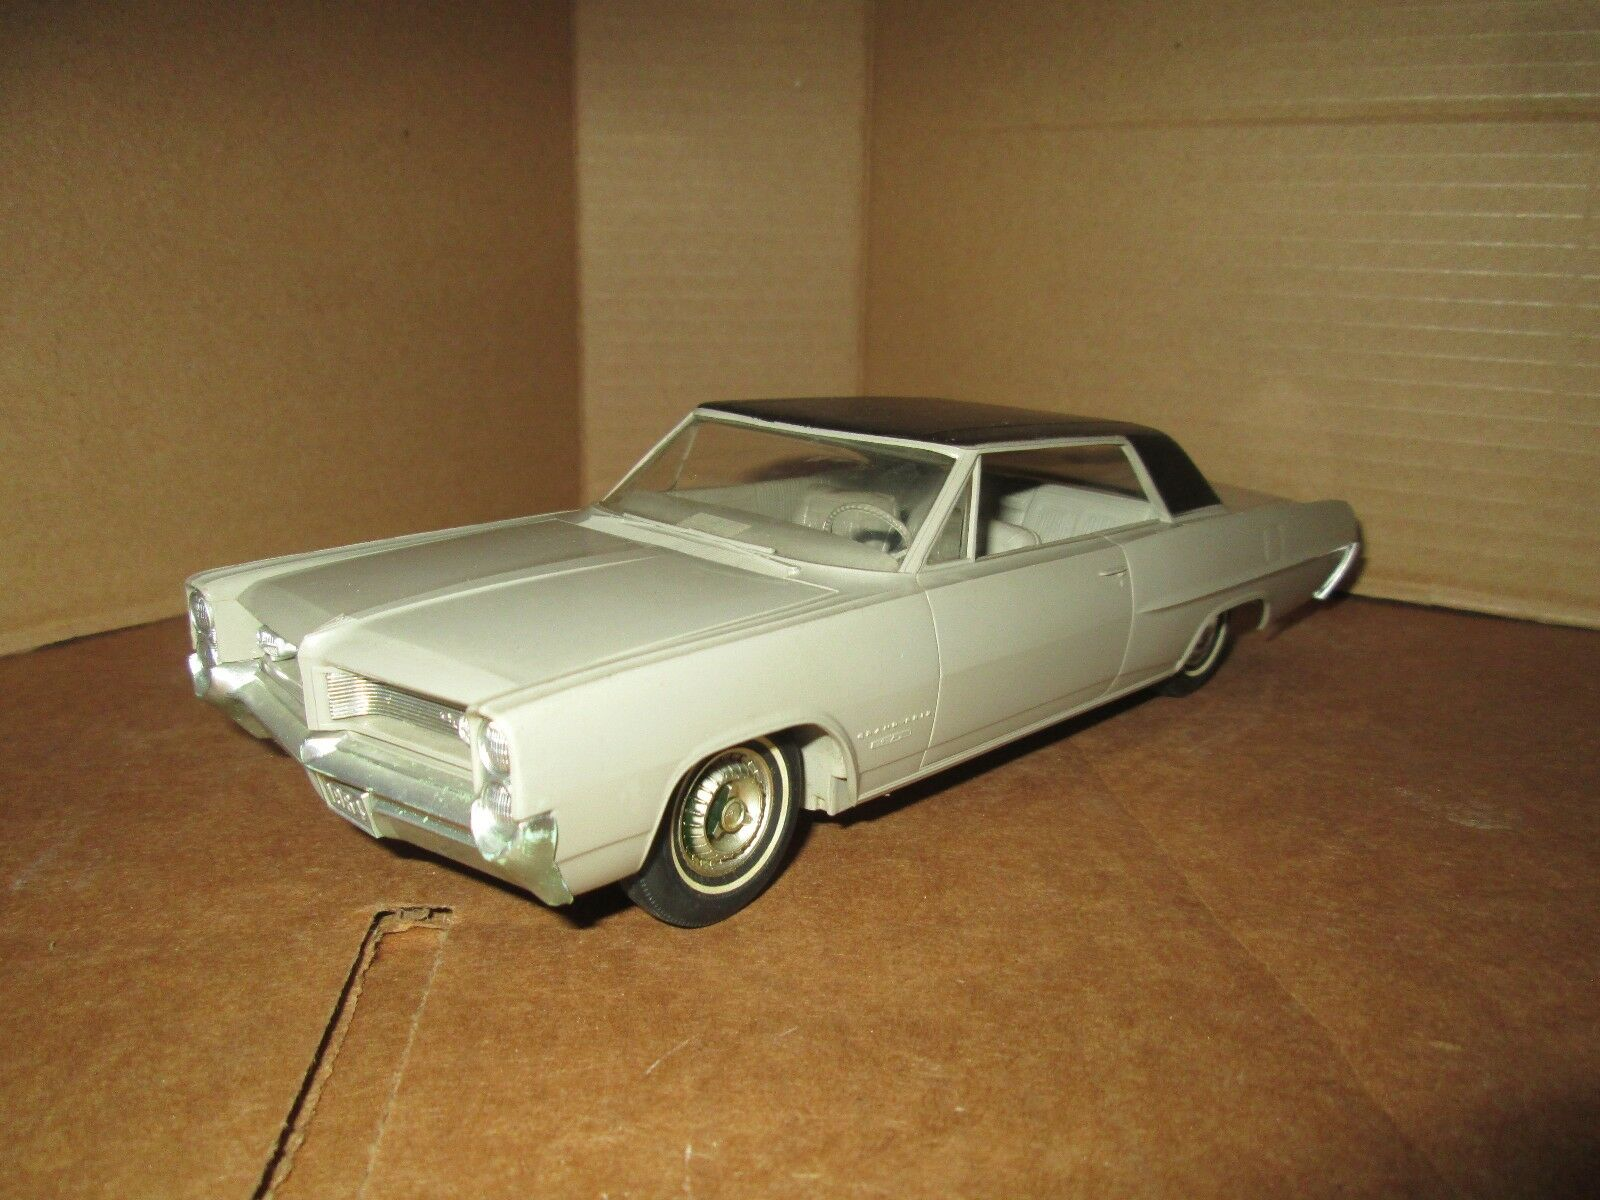 1964 pontiac grand prix dealer promo - display stck sieht sehr gut 1   25 lose